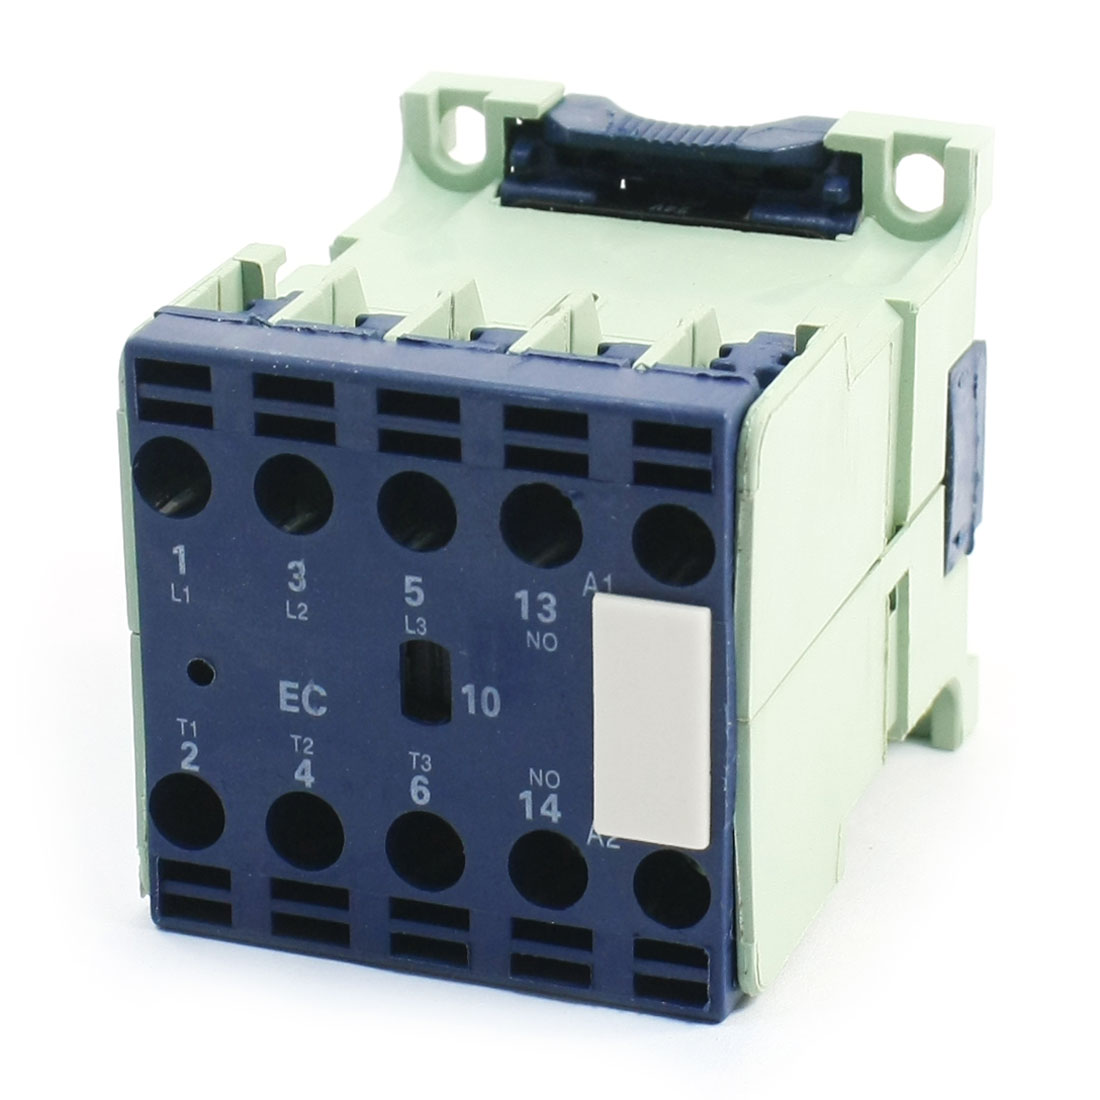 12A 3 Phase 1NO AC Contactor DIN Rail Mount 24V Coil CJX2-1210E